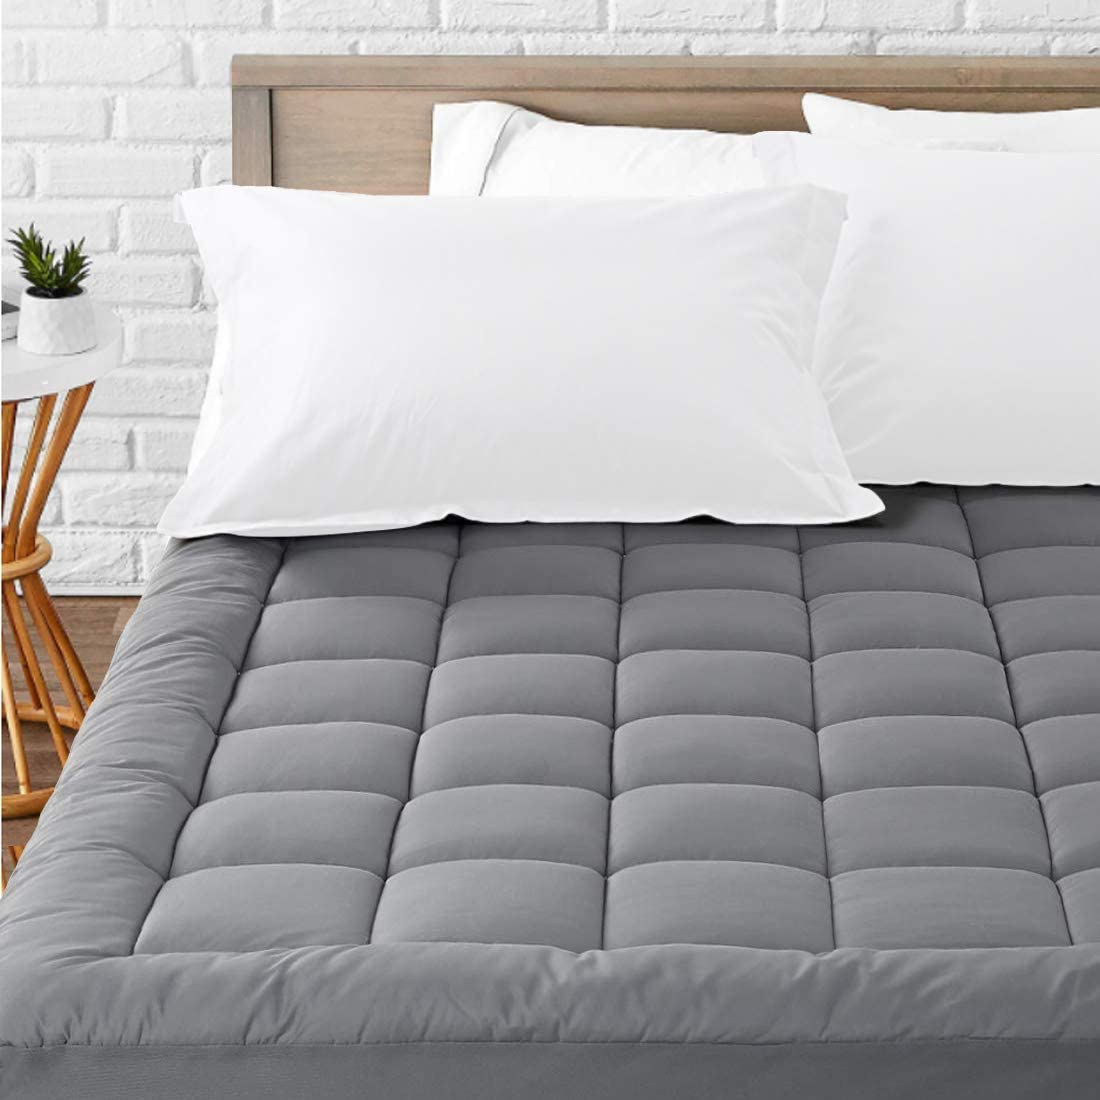 8-21 Inch Fitted Deep Pocket,Grey Twin Mattress Pad Cover Cooling Mattress Topper Pillow Top Breathable Mattress Toppers Quilted Fitted